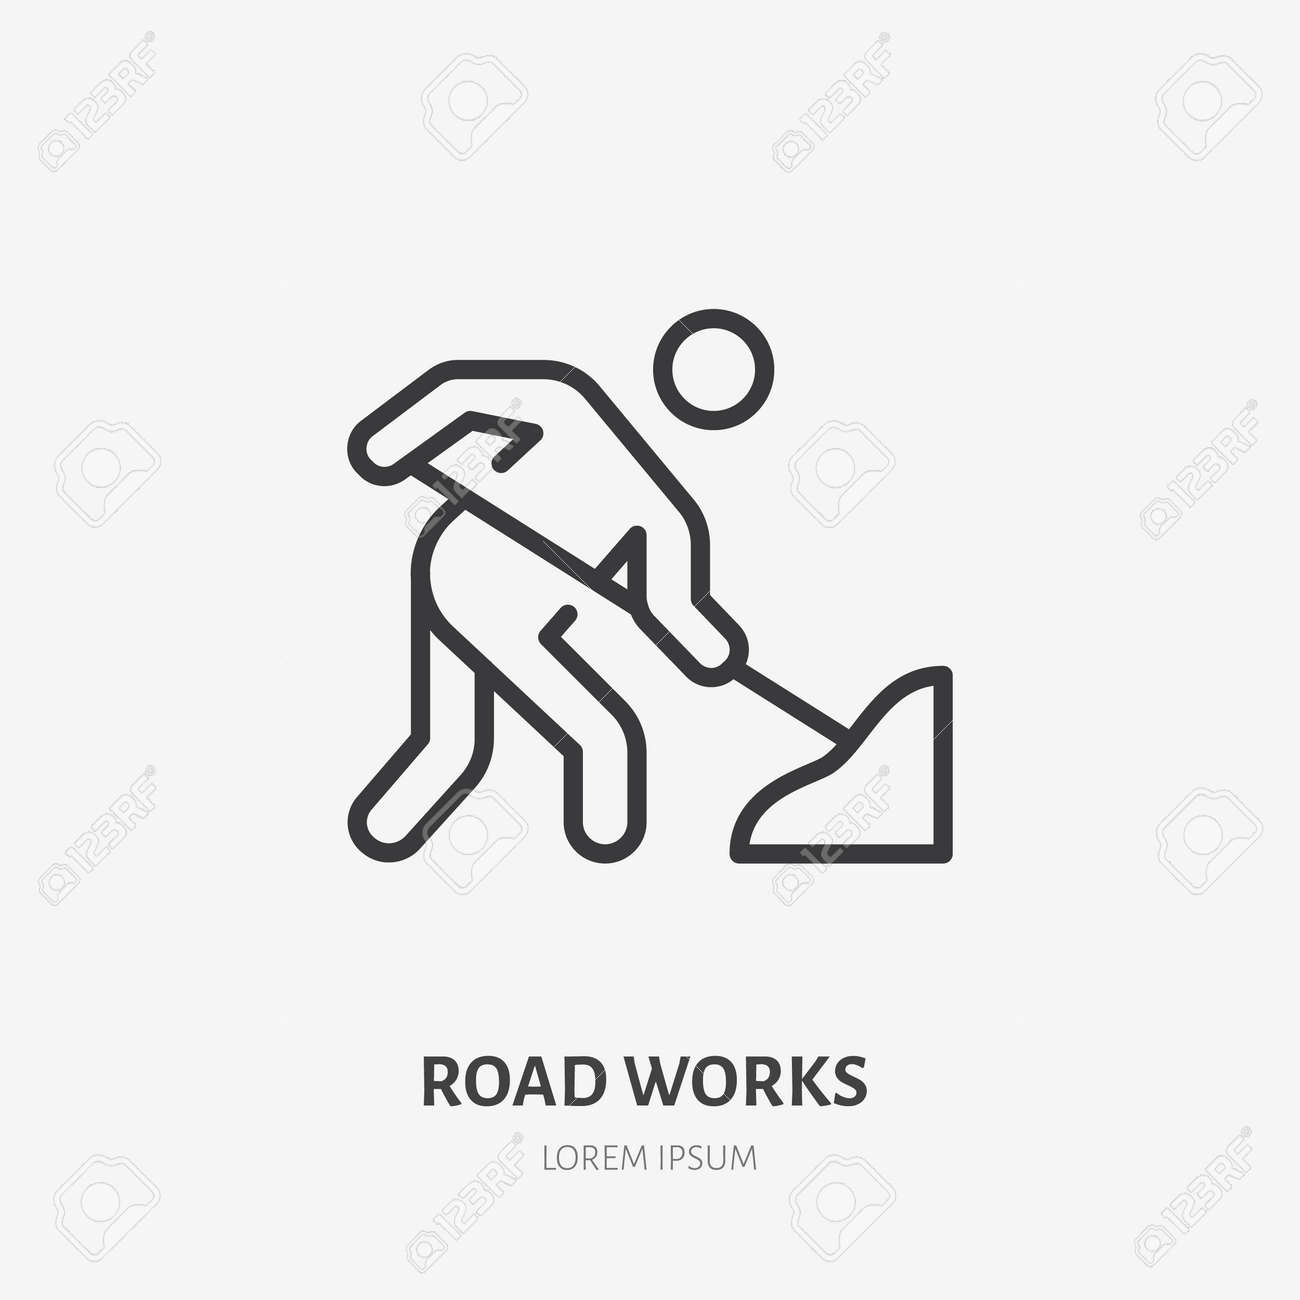 Road works flat line icon. Vector outline illustration of man with the shovel. Black color thin linear sign for warning pictogram. - 162491642